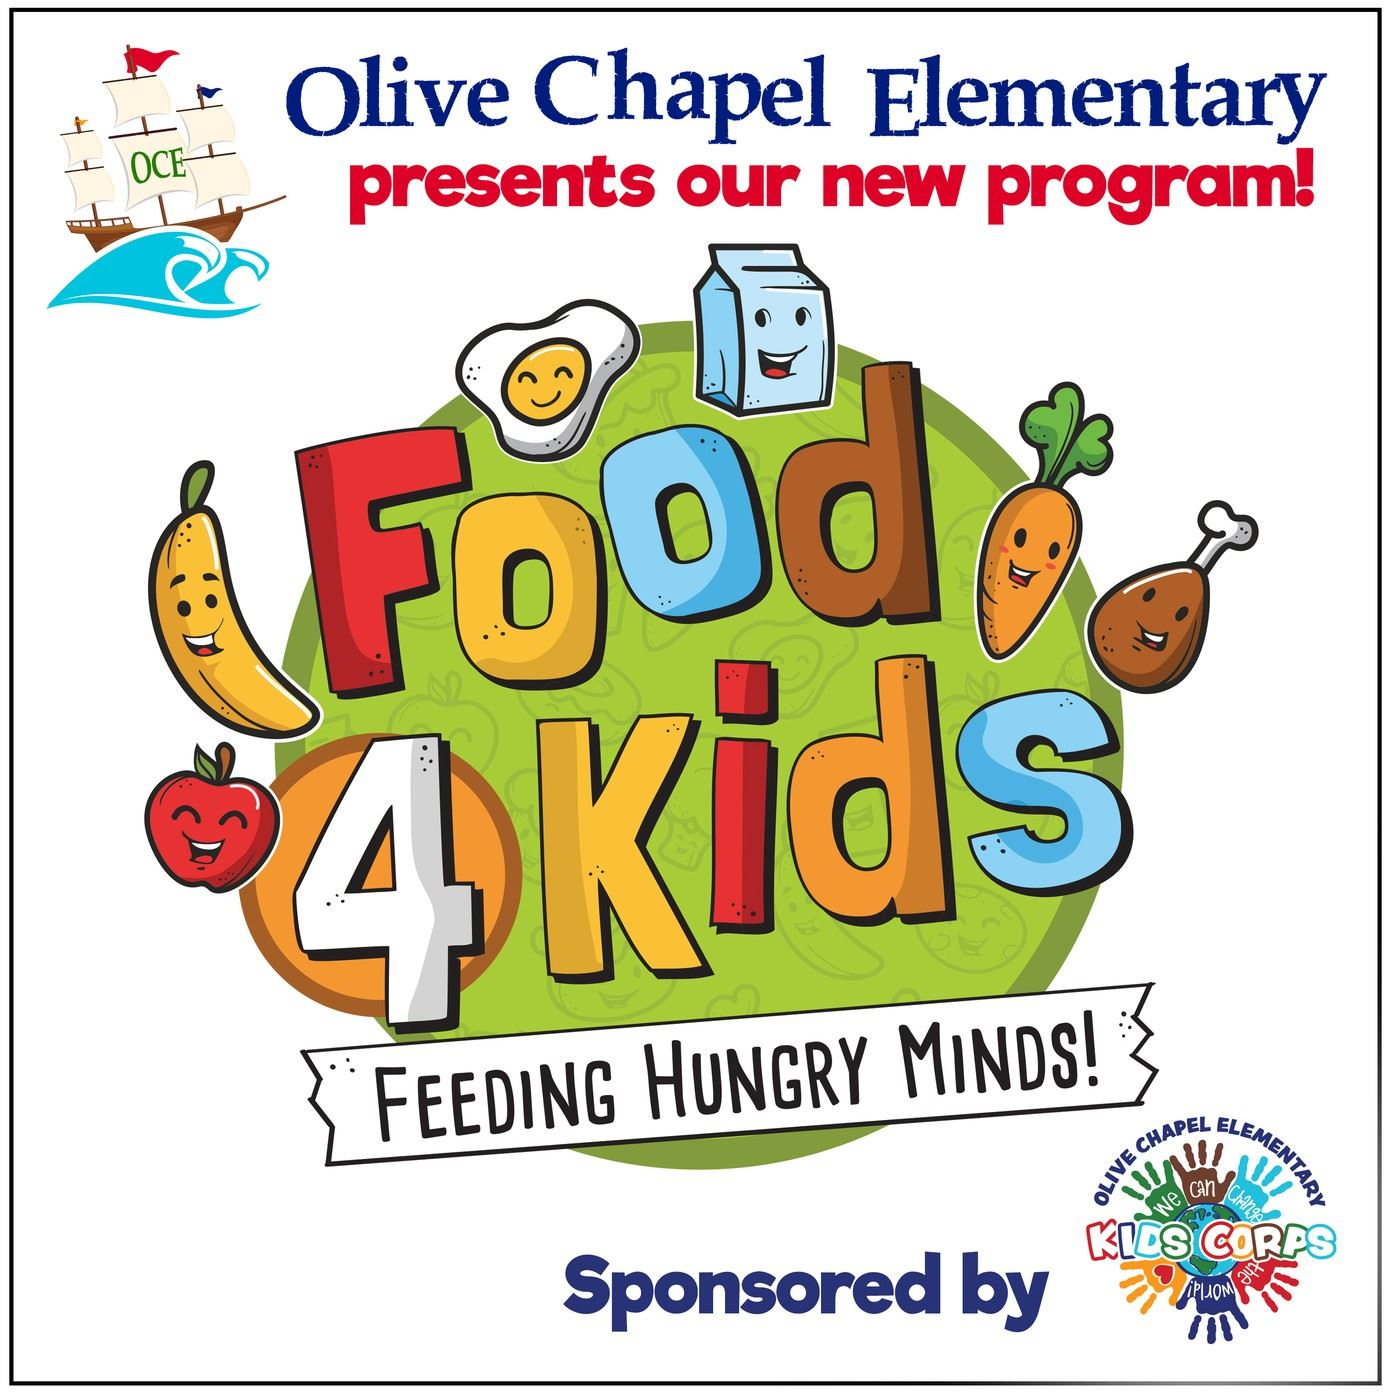 Food 4 Kids Initiative